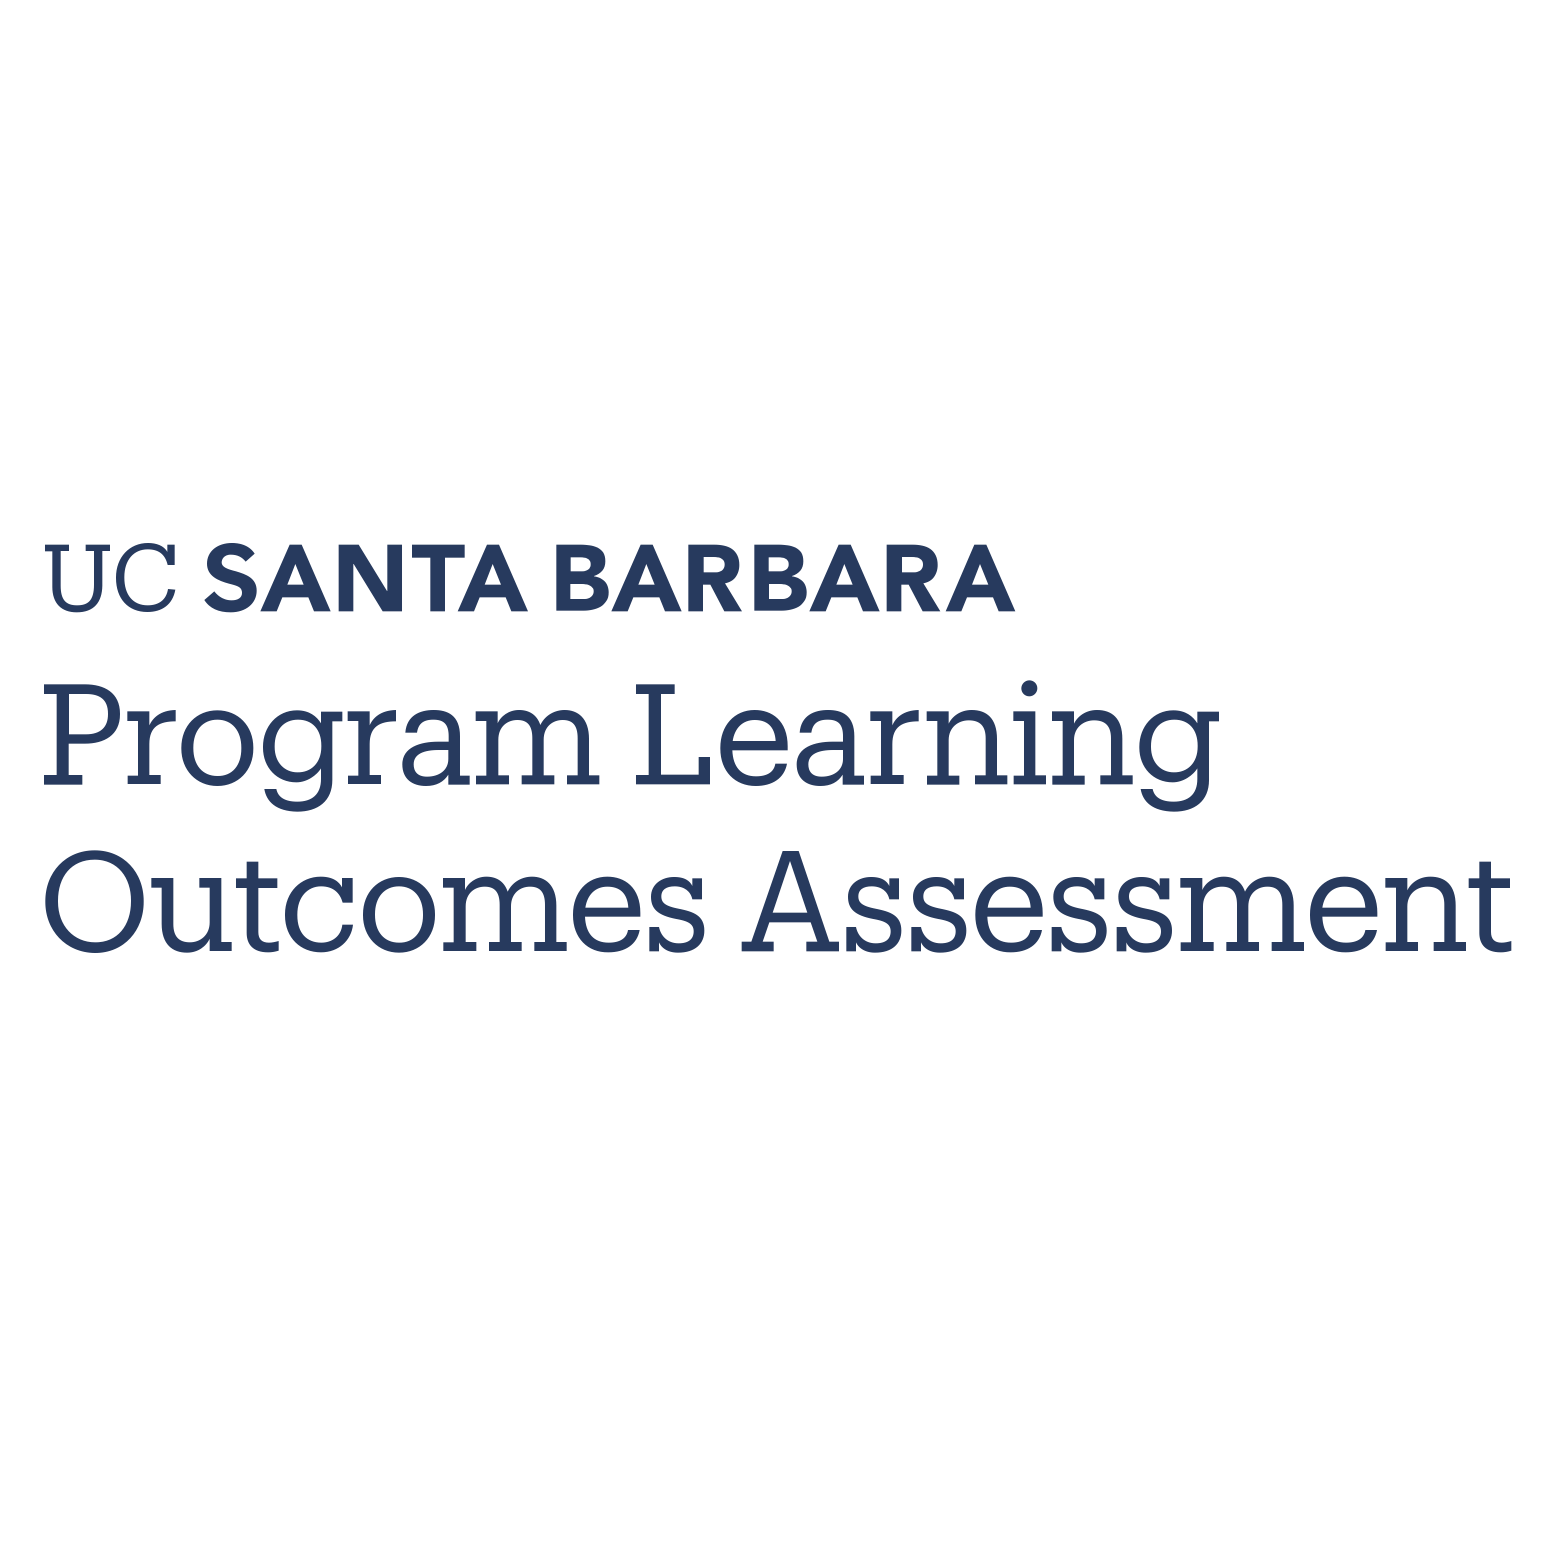 UC Santa Barbara Program Learning Outcomes Assessment